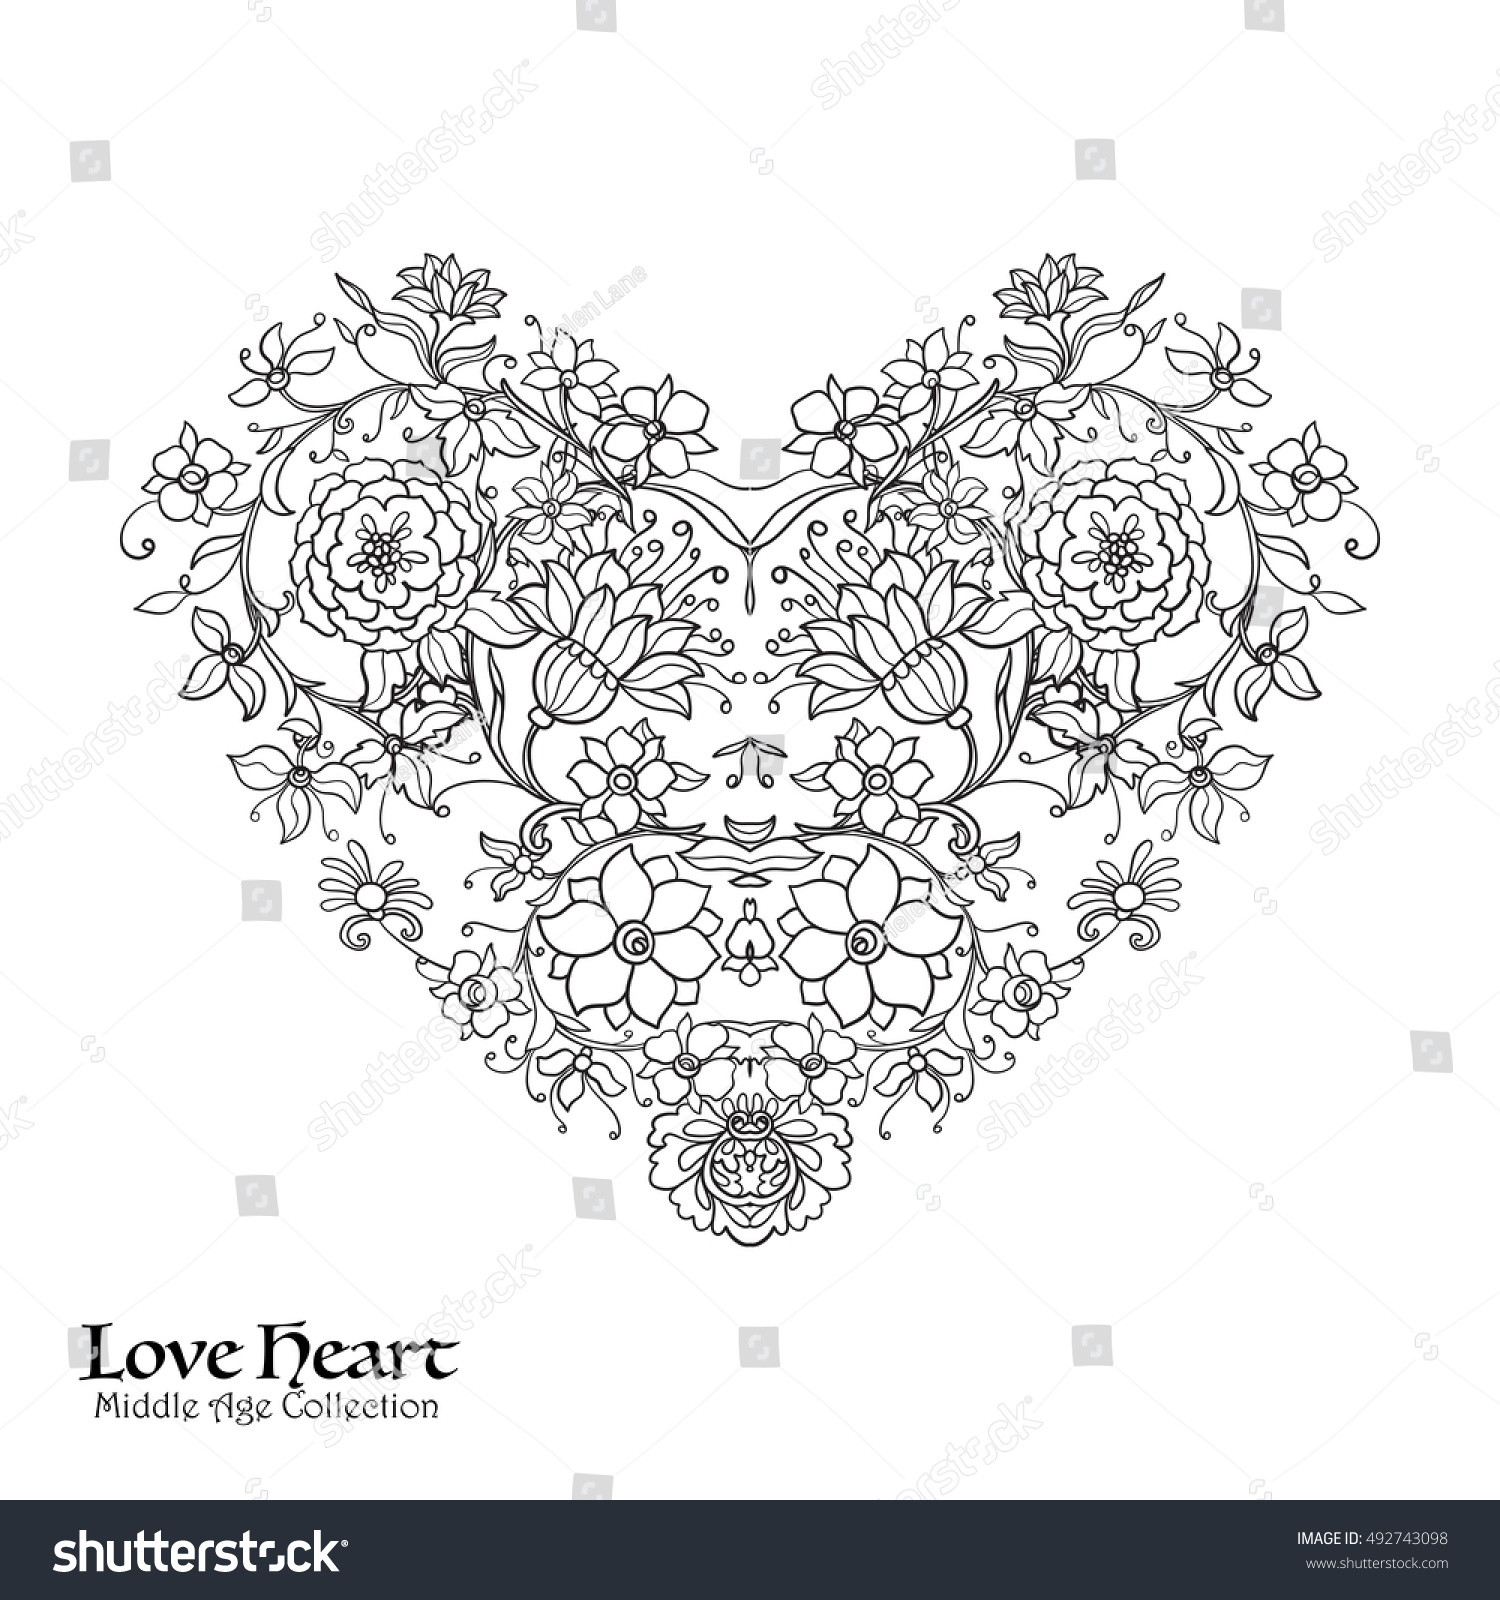 Coloring page birthday invitaion - Decorative Love Heart In Baroque Royal Style Good For Greeting Card For Birthday